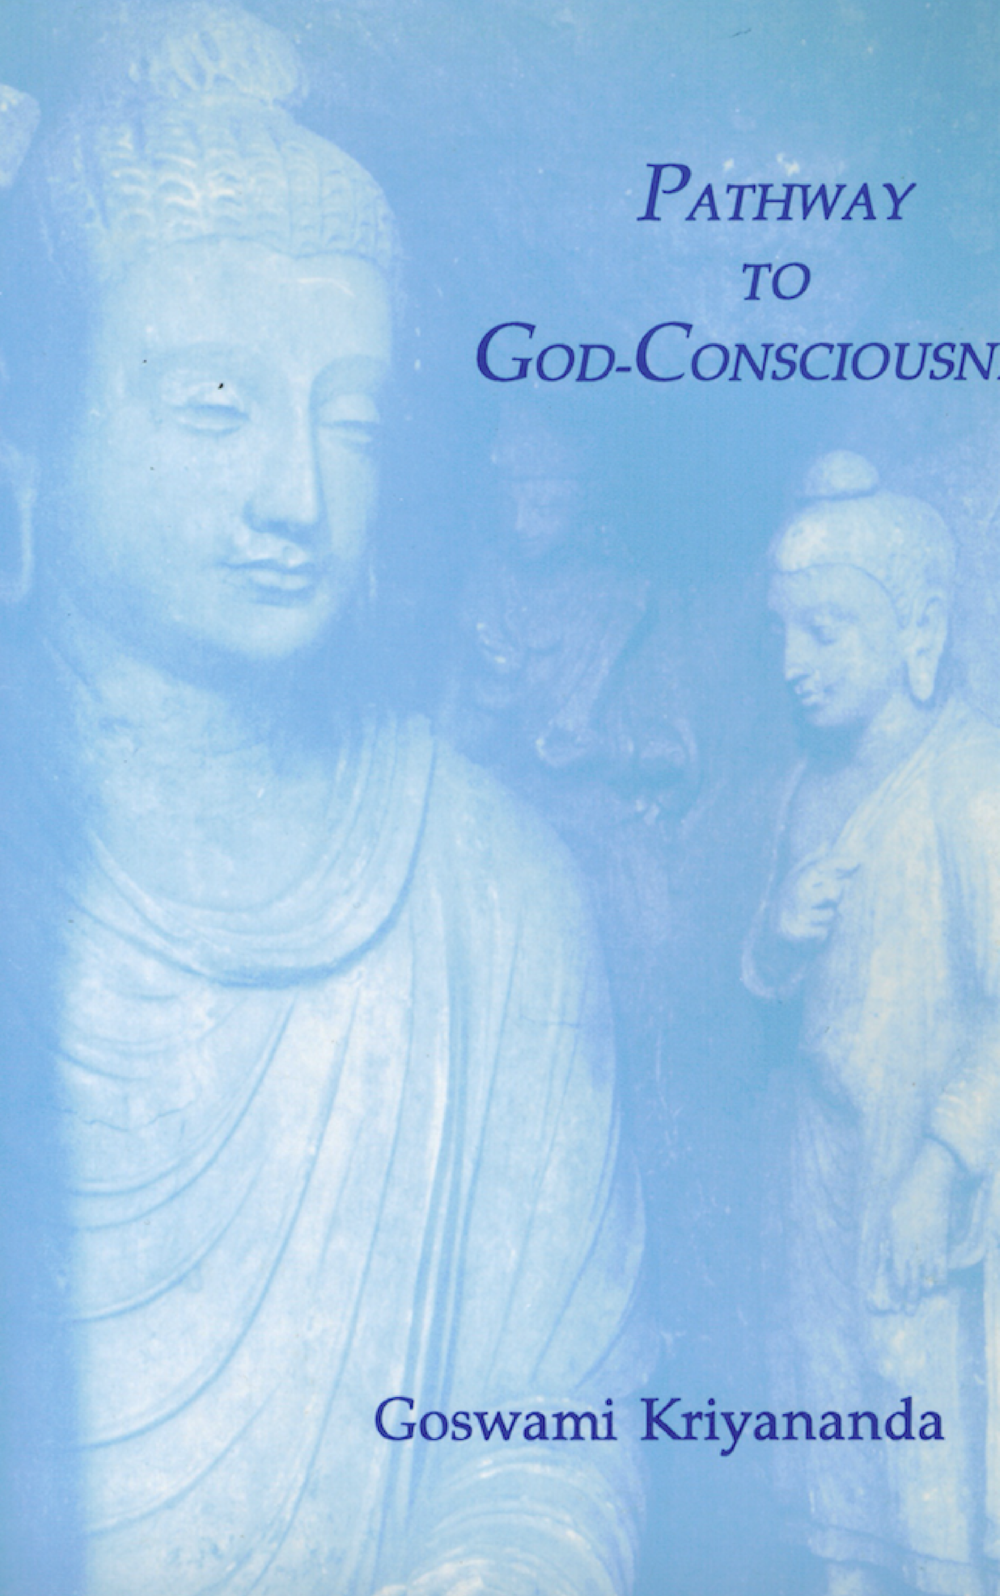 Pathway to God-Consciousness - $9.00